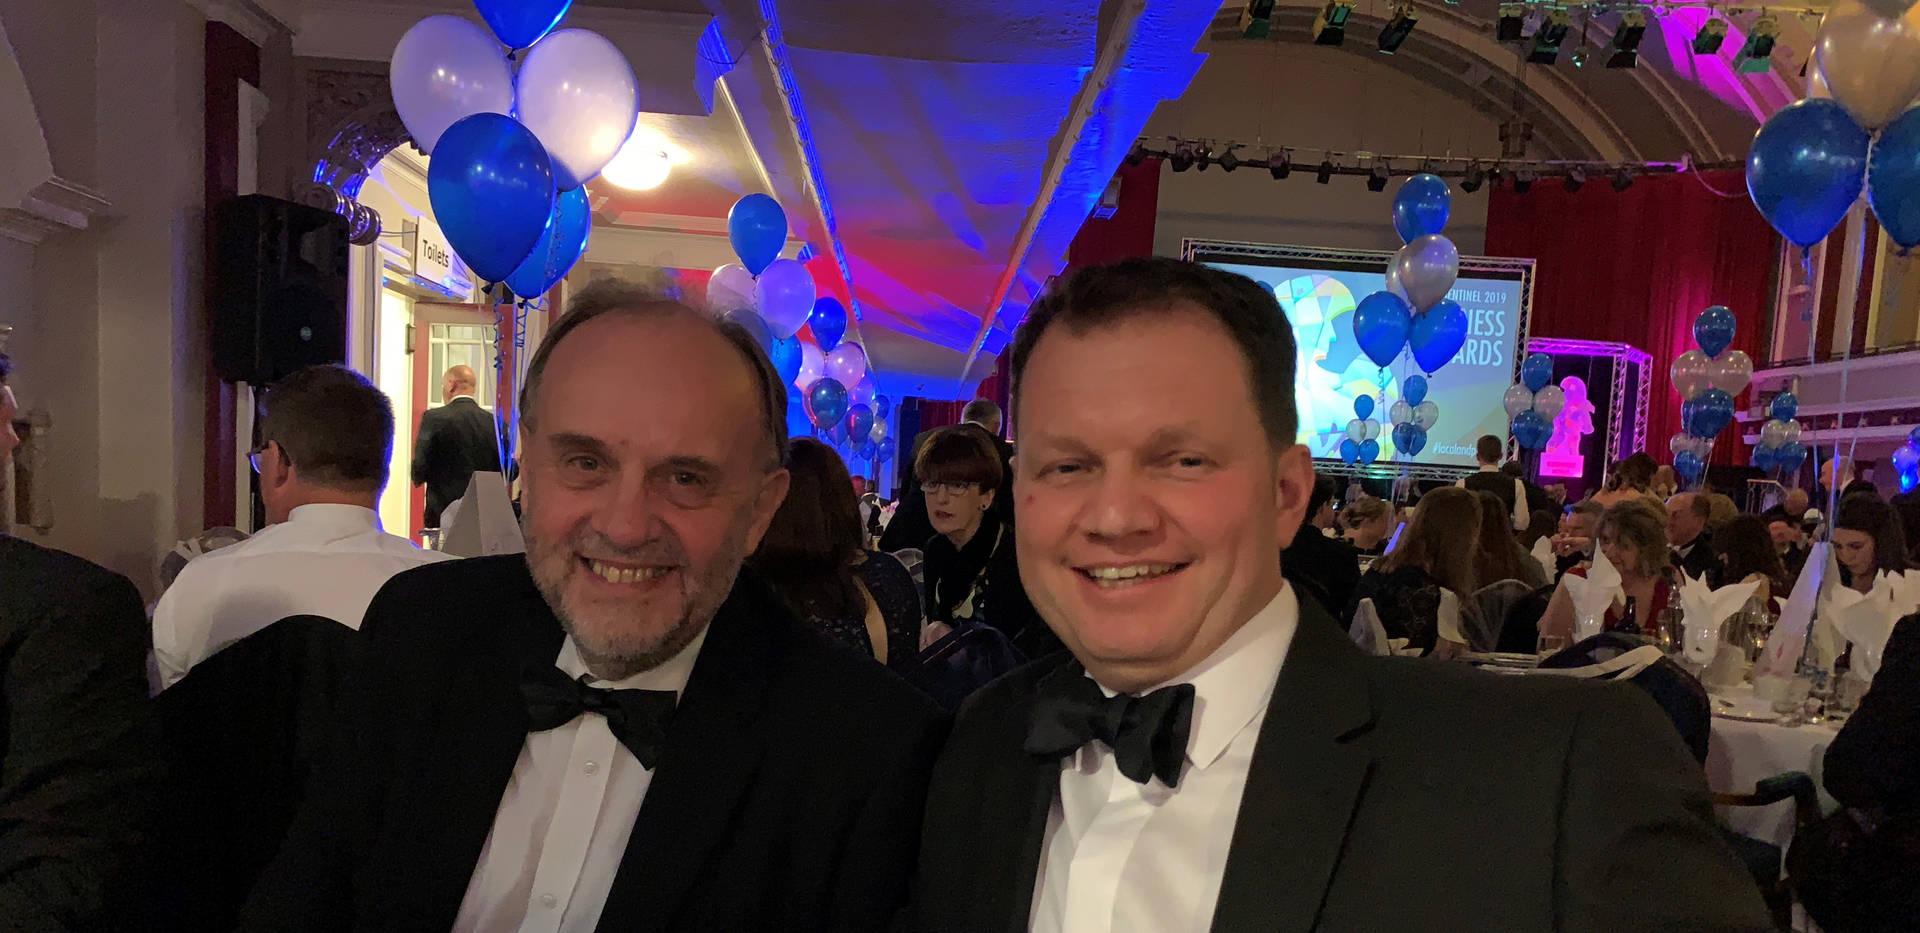 Garry Culverwell (Engineering Manager), Dave Elms (Group Business Improvement Director) at Table